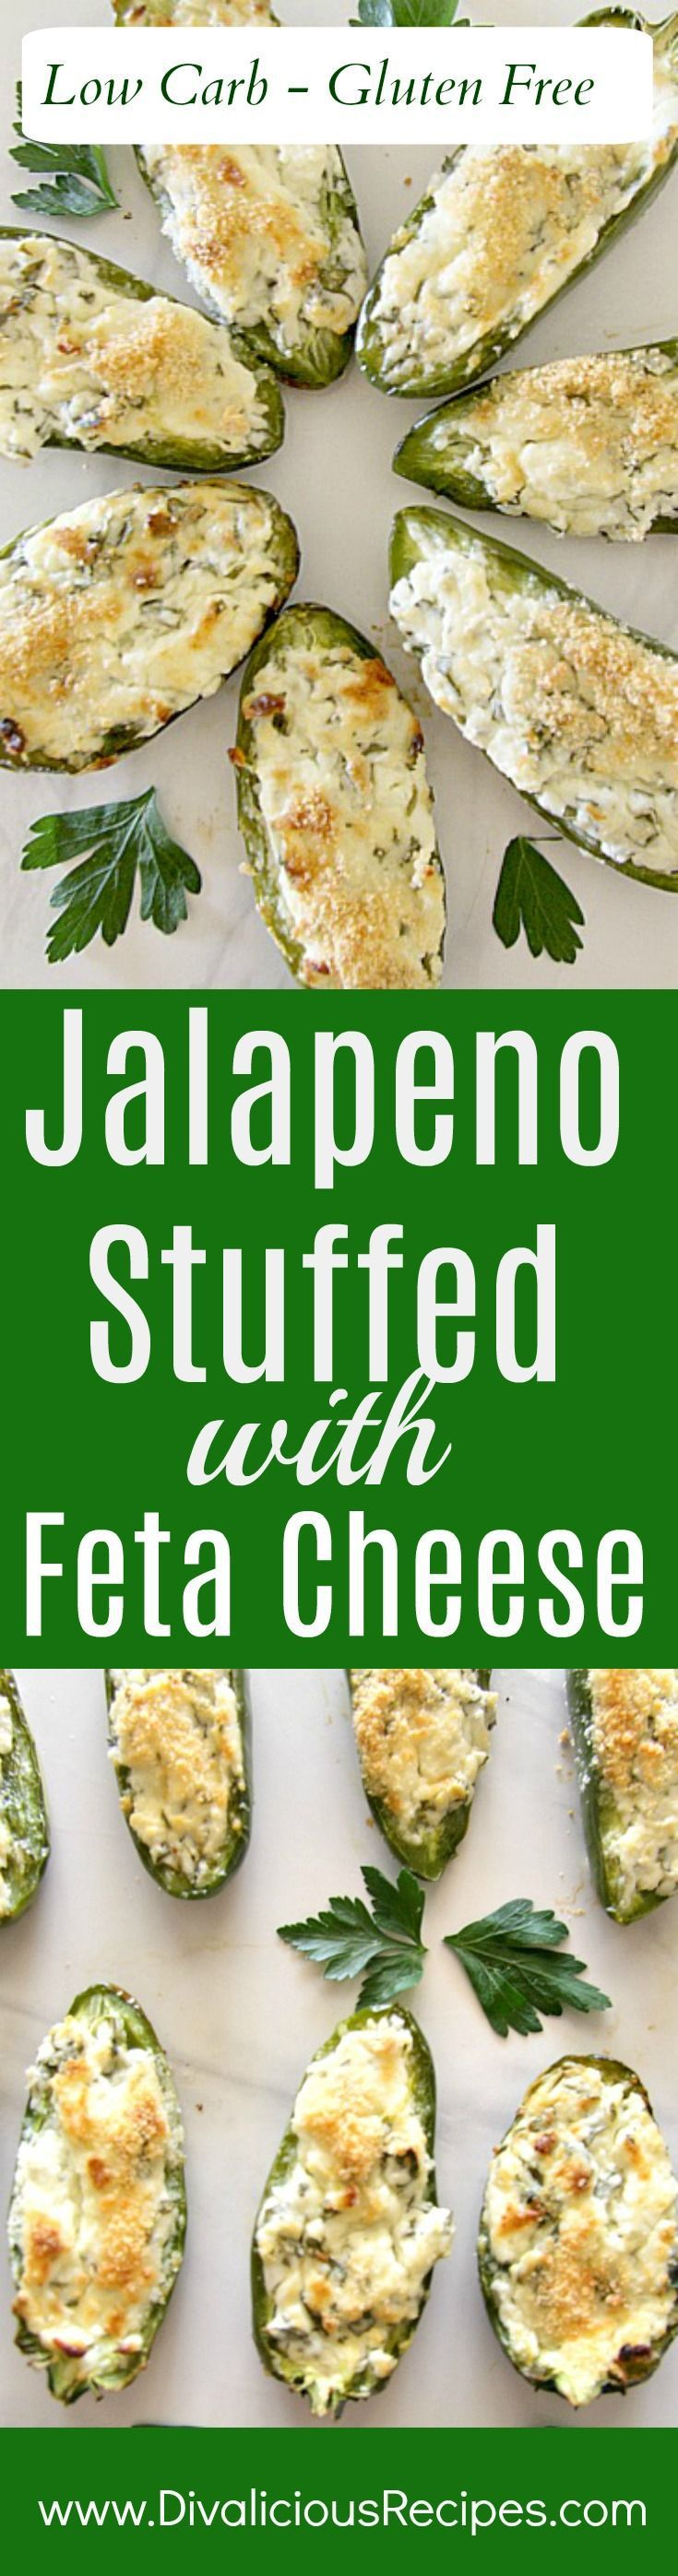 Jalapeno stuffed feta cheese makes a delicious alternative to jalapeno poppers as well as being low carb and gluten free.